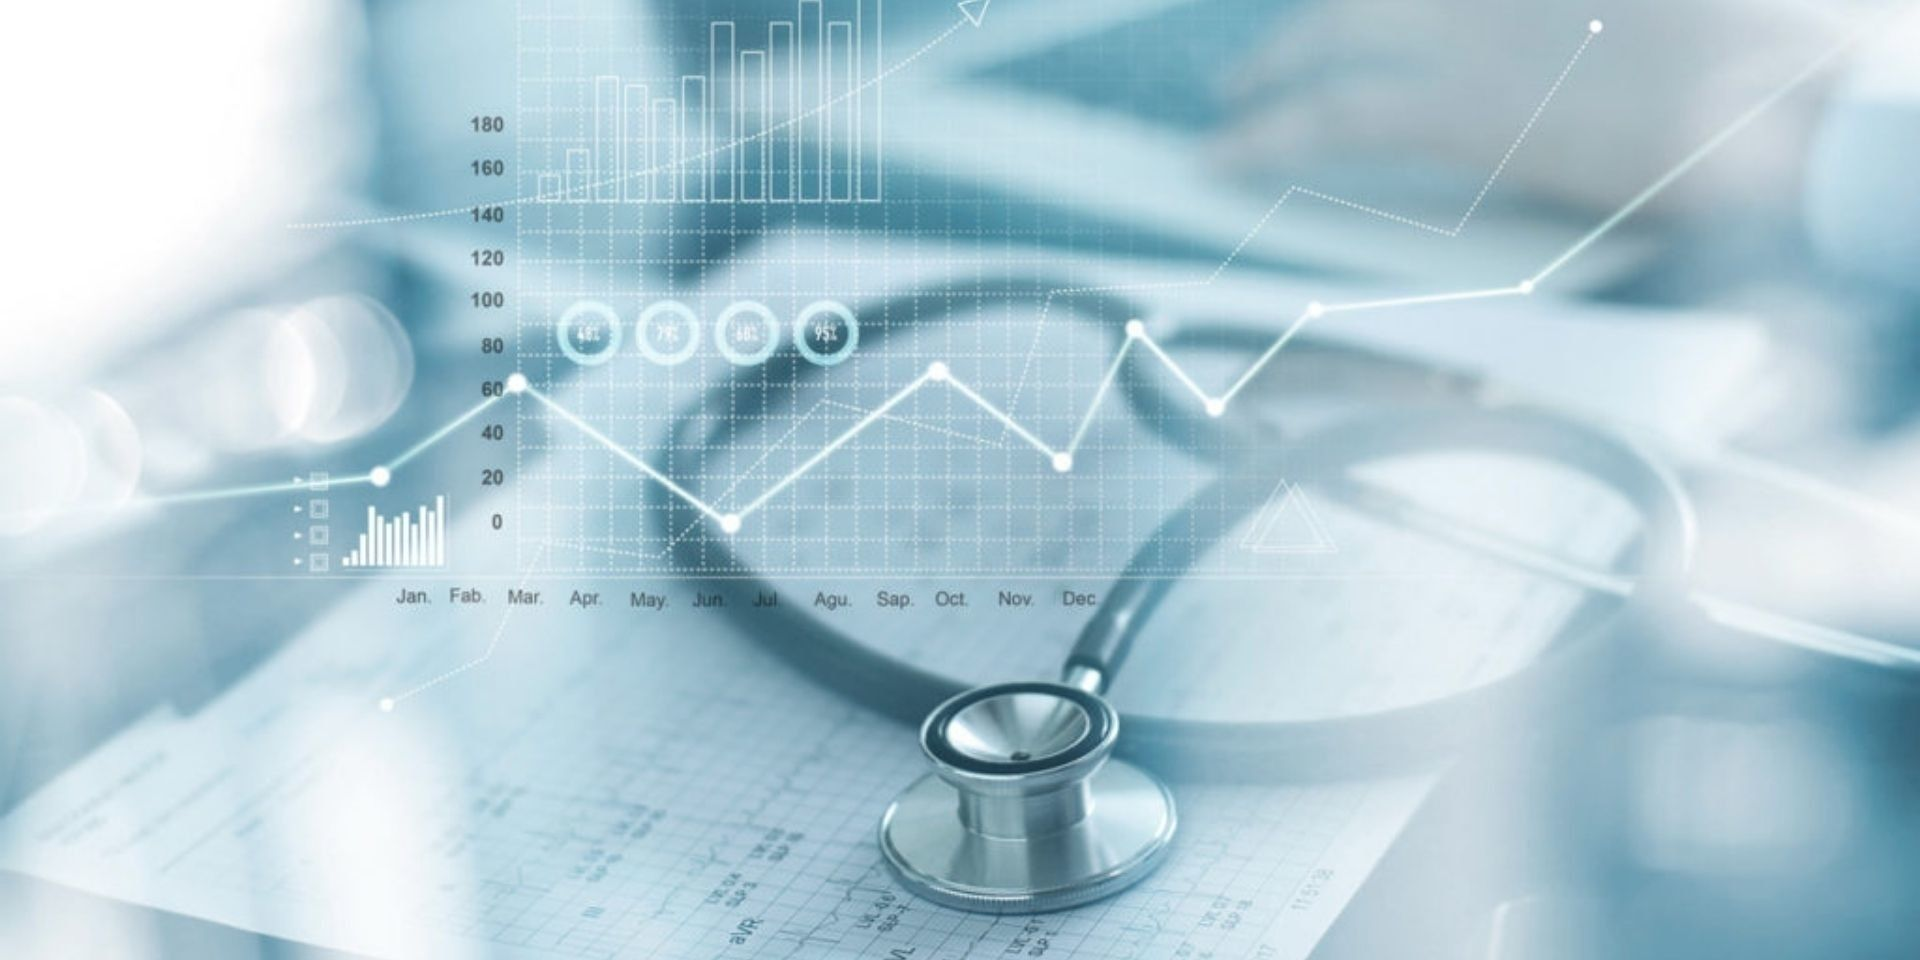 Importance of KPI in healthcare